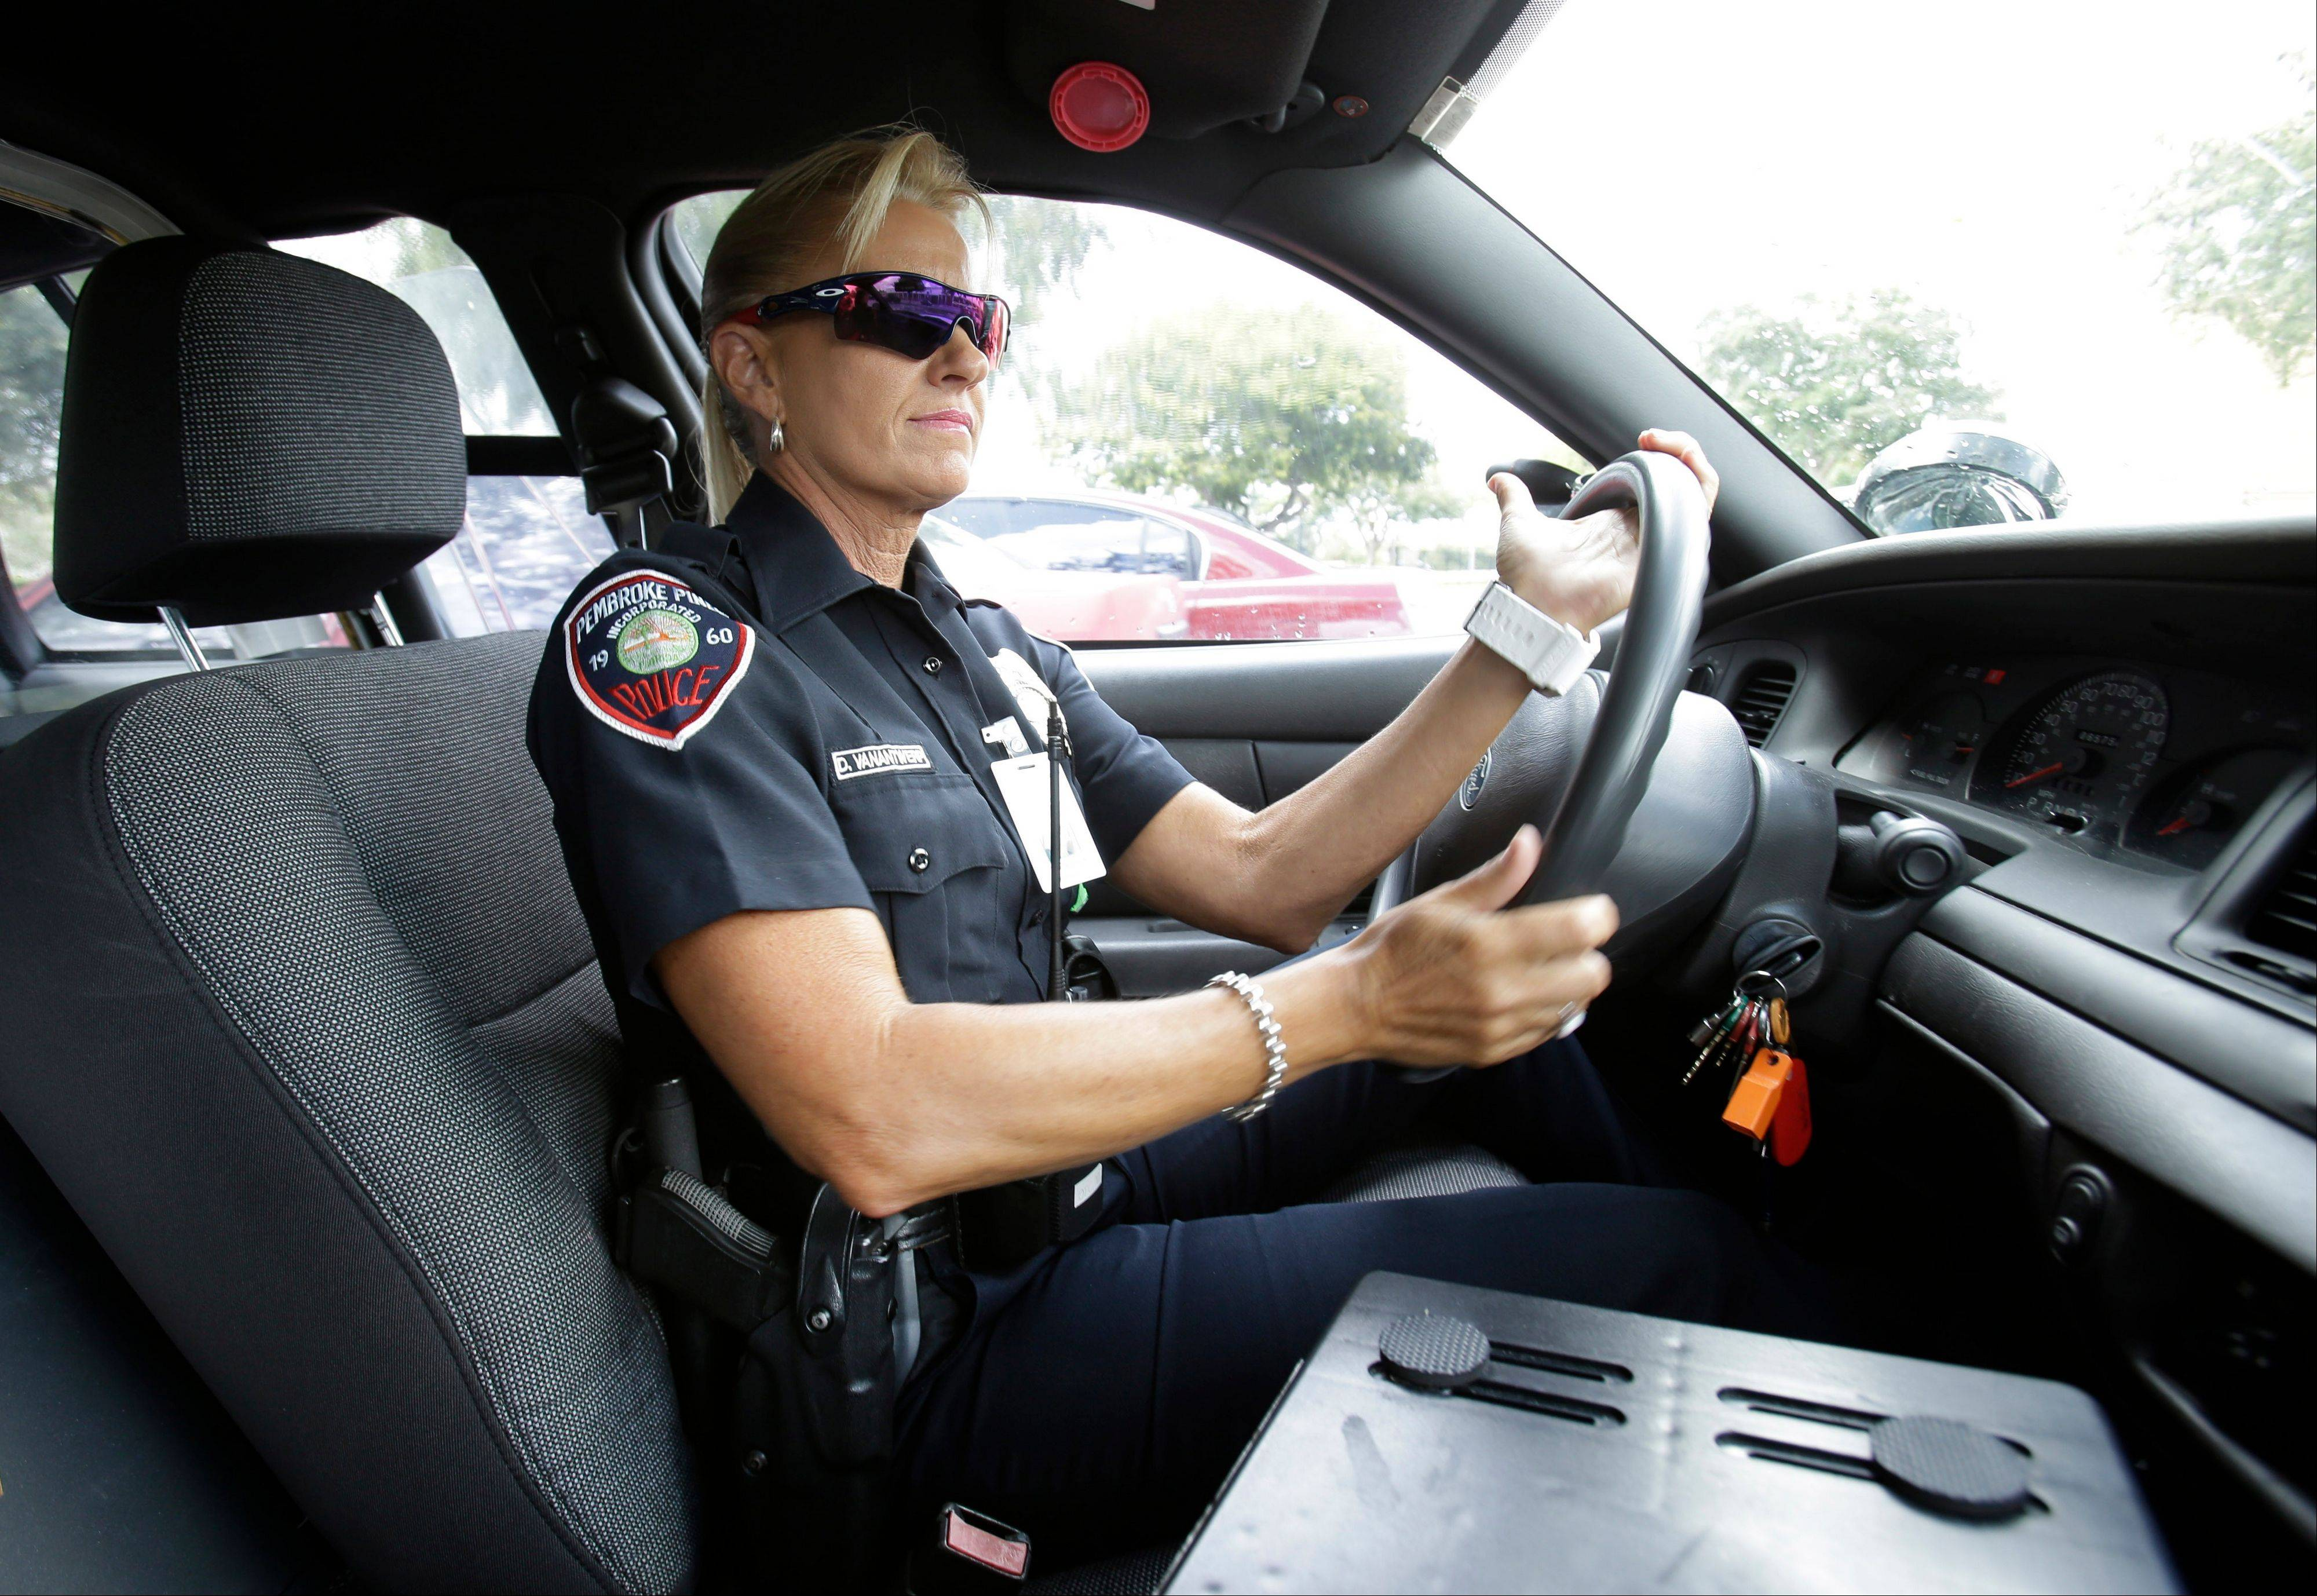 Dara Van Antwerp, the school resource officer at Panther Run Elementary School, drives her patrol car Thursday in Pembroke Pines, Fla., in the suburbs of Fort Lauderdale.